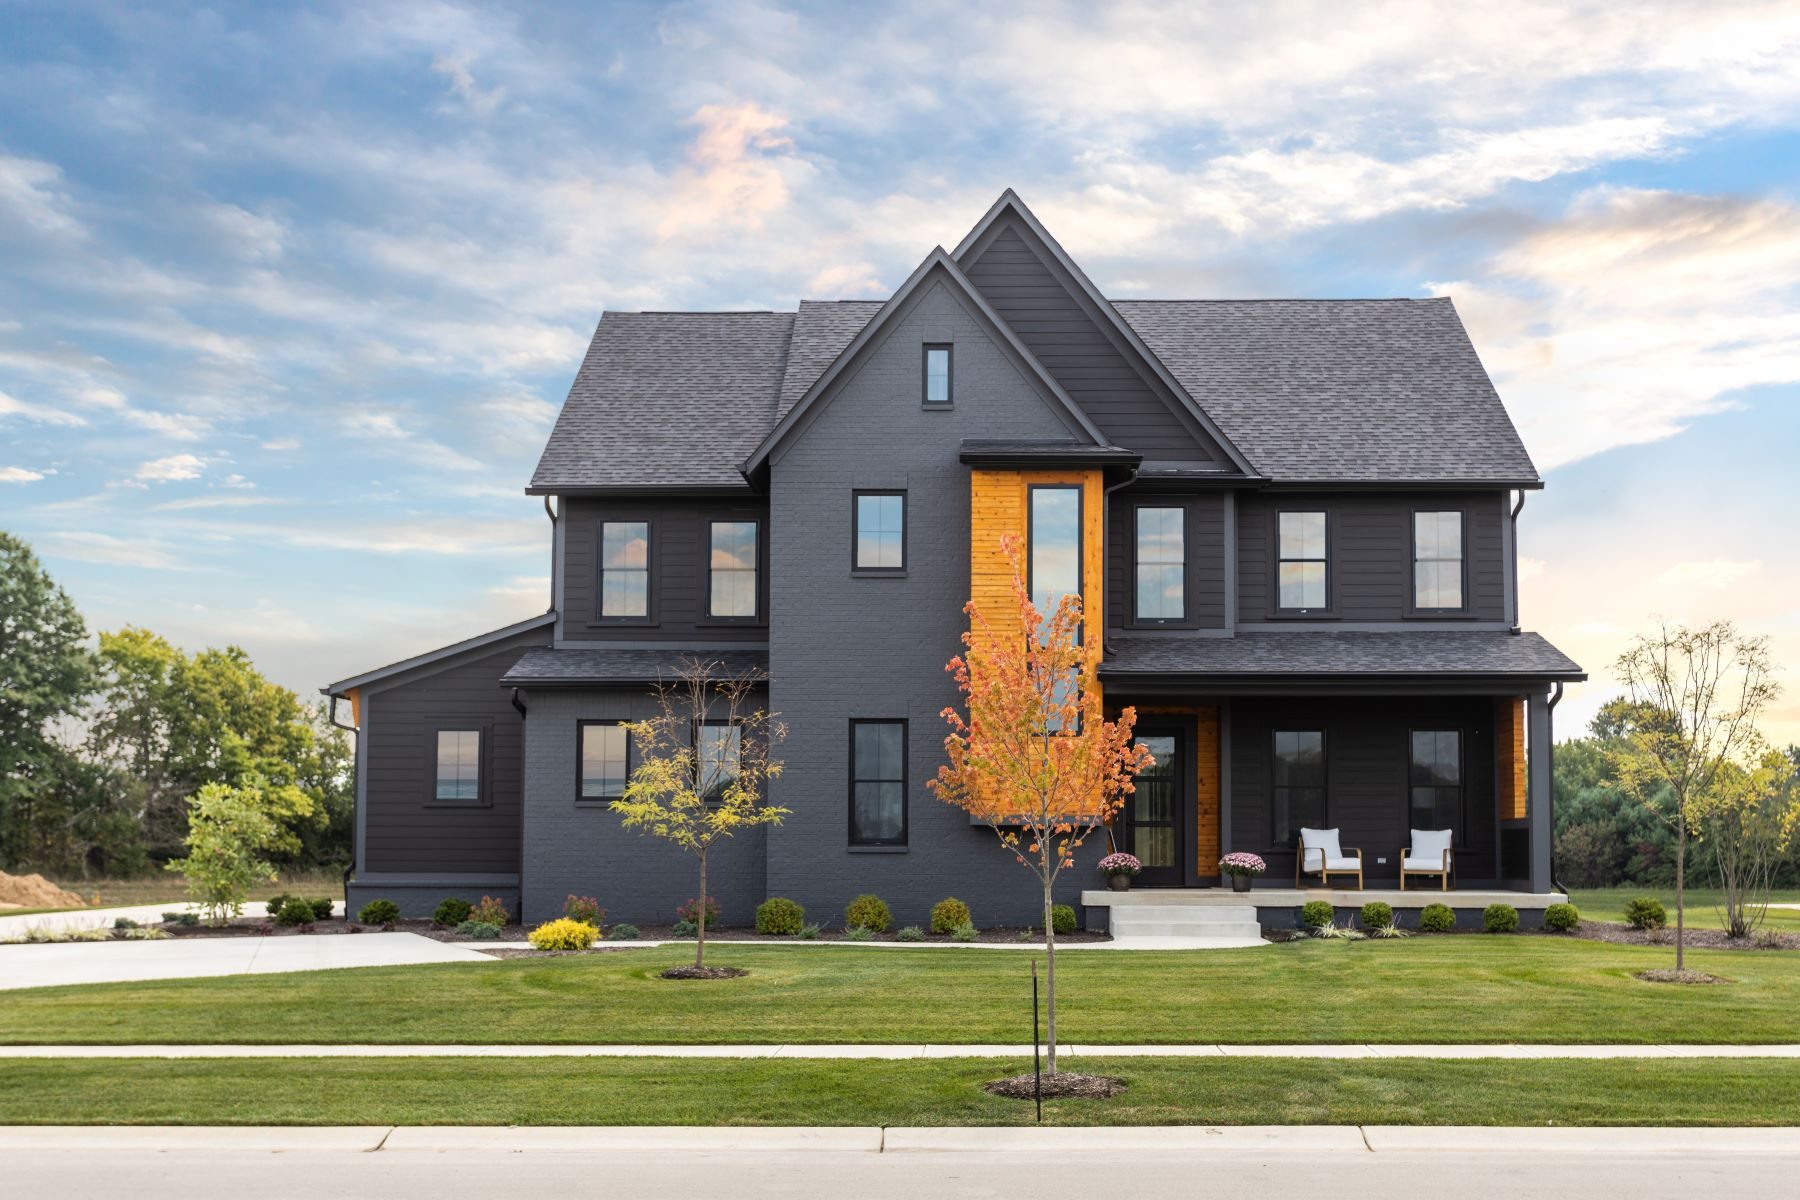 Single Family Homes for Active at Architectural Stunner in Pemberton 8135 Hanley Lane Zionsville, Indiana 46077 United States